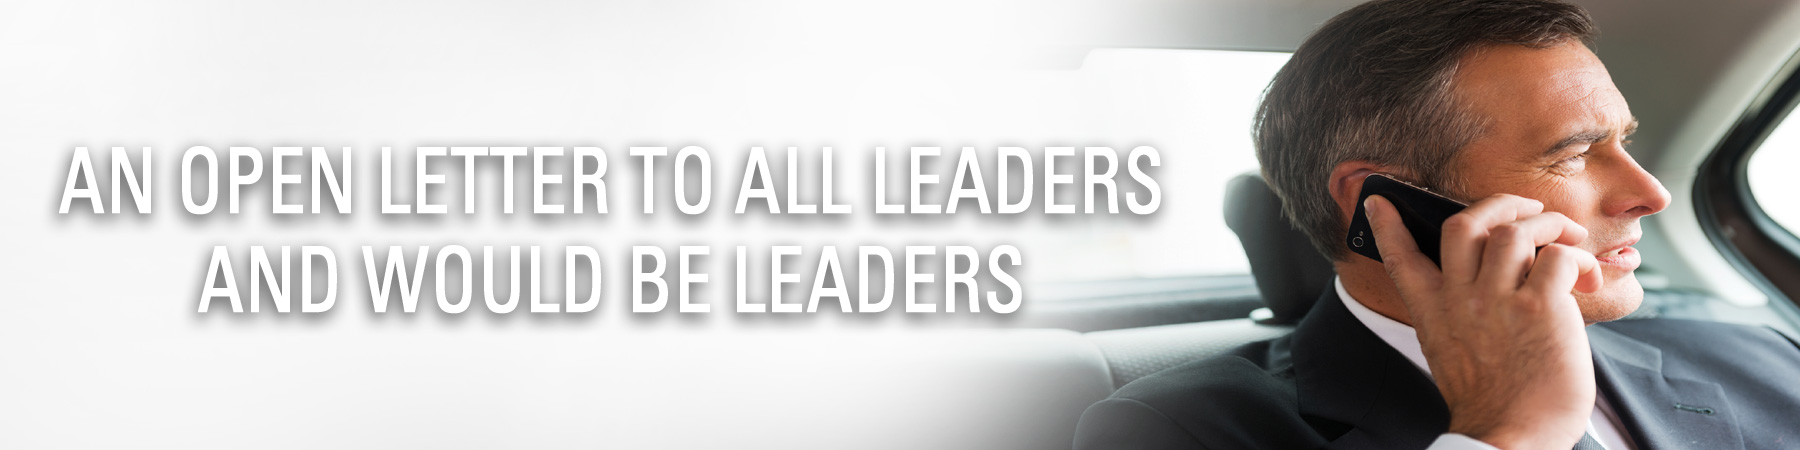 An Open Letter to All Leaders and Would BeLeaders